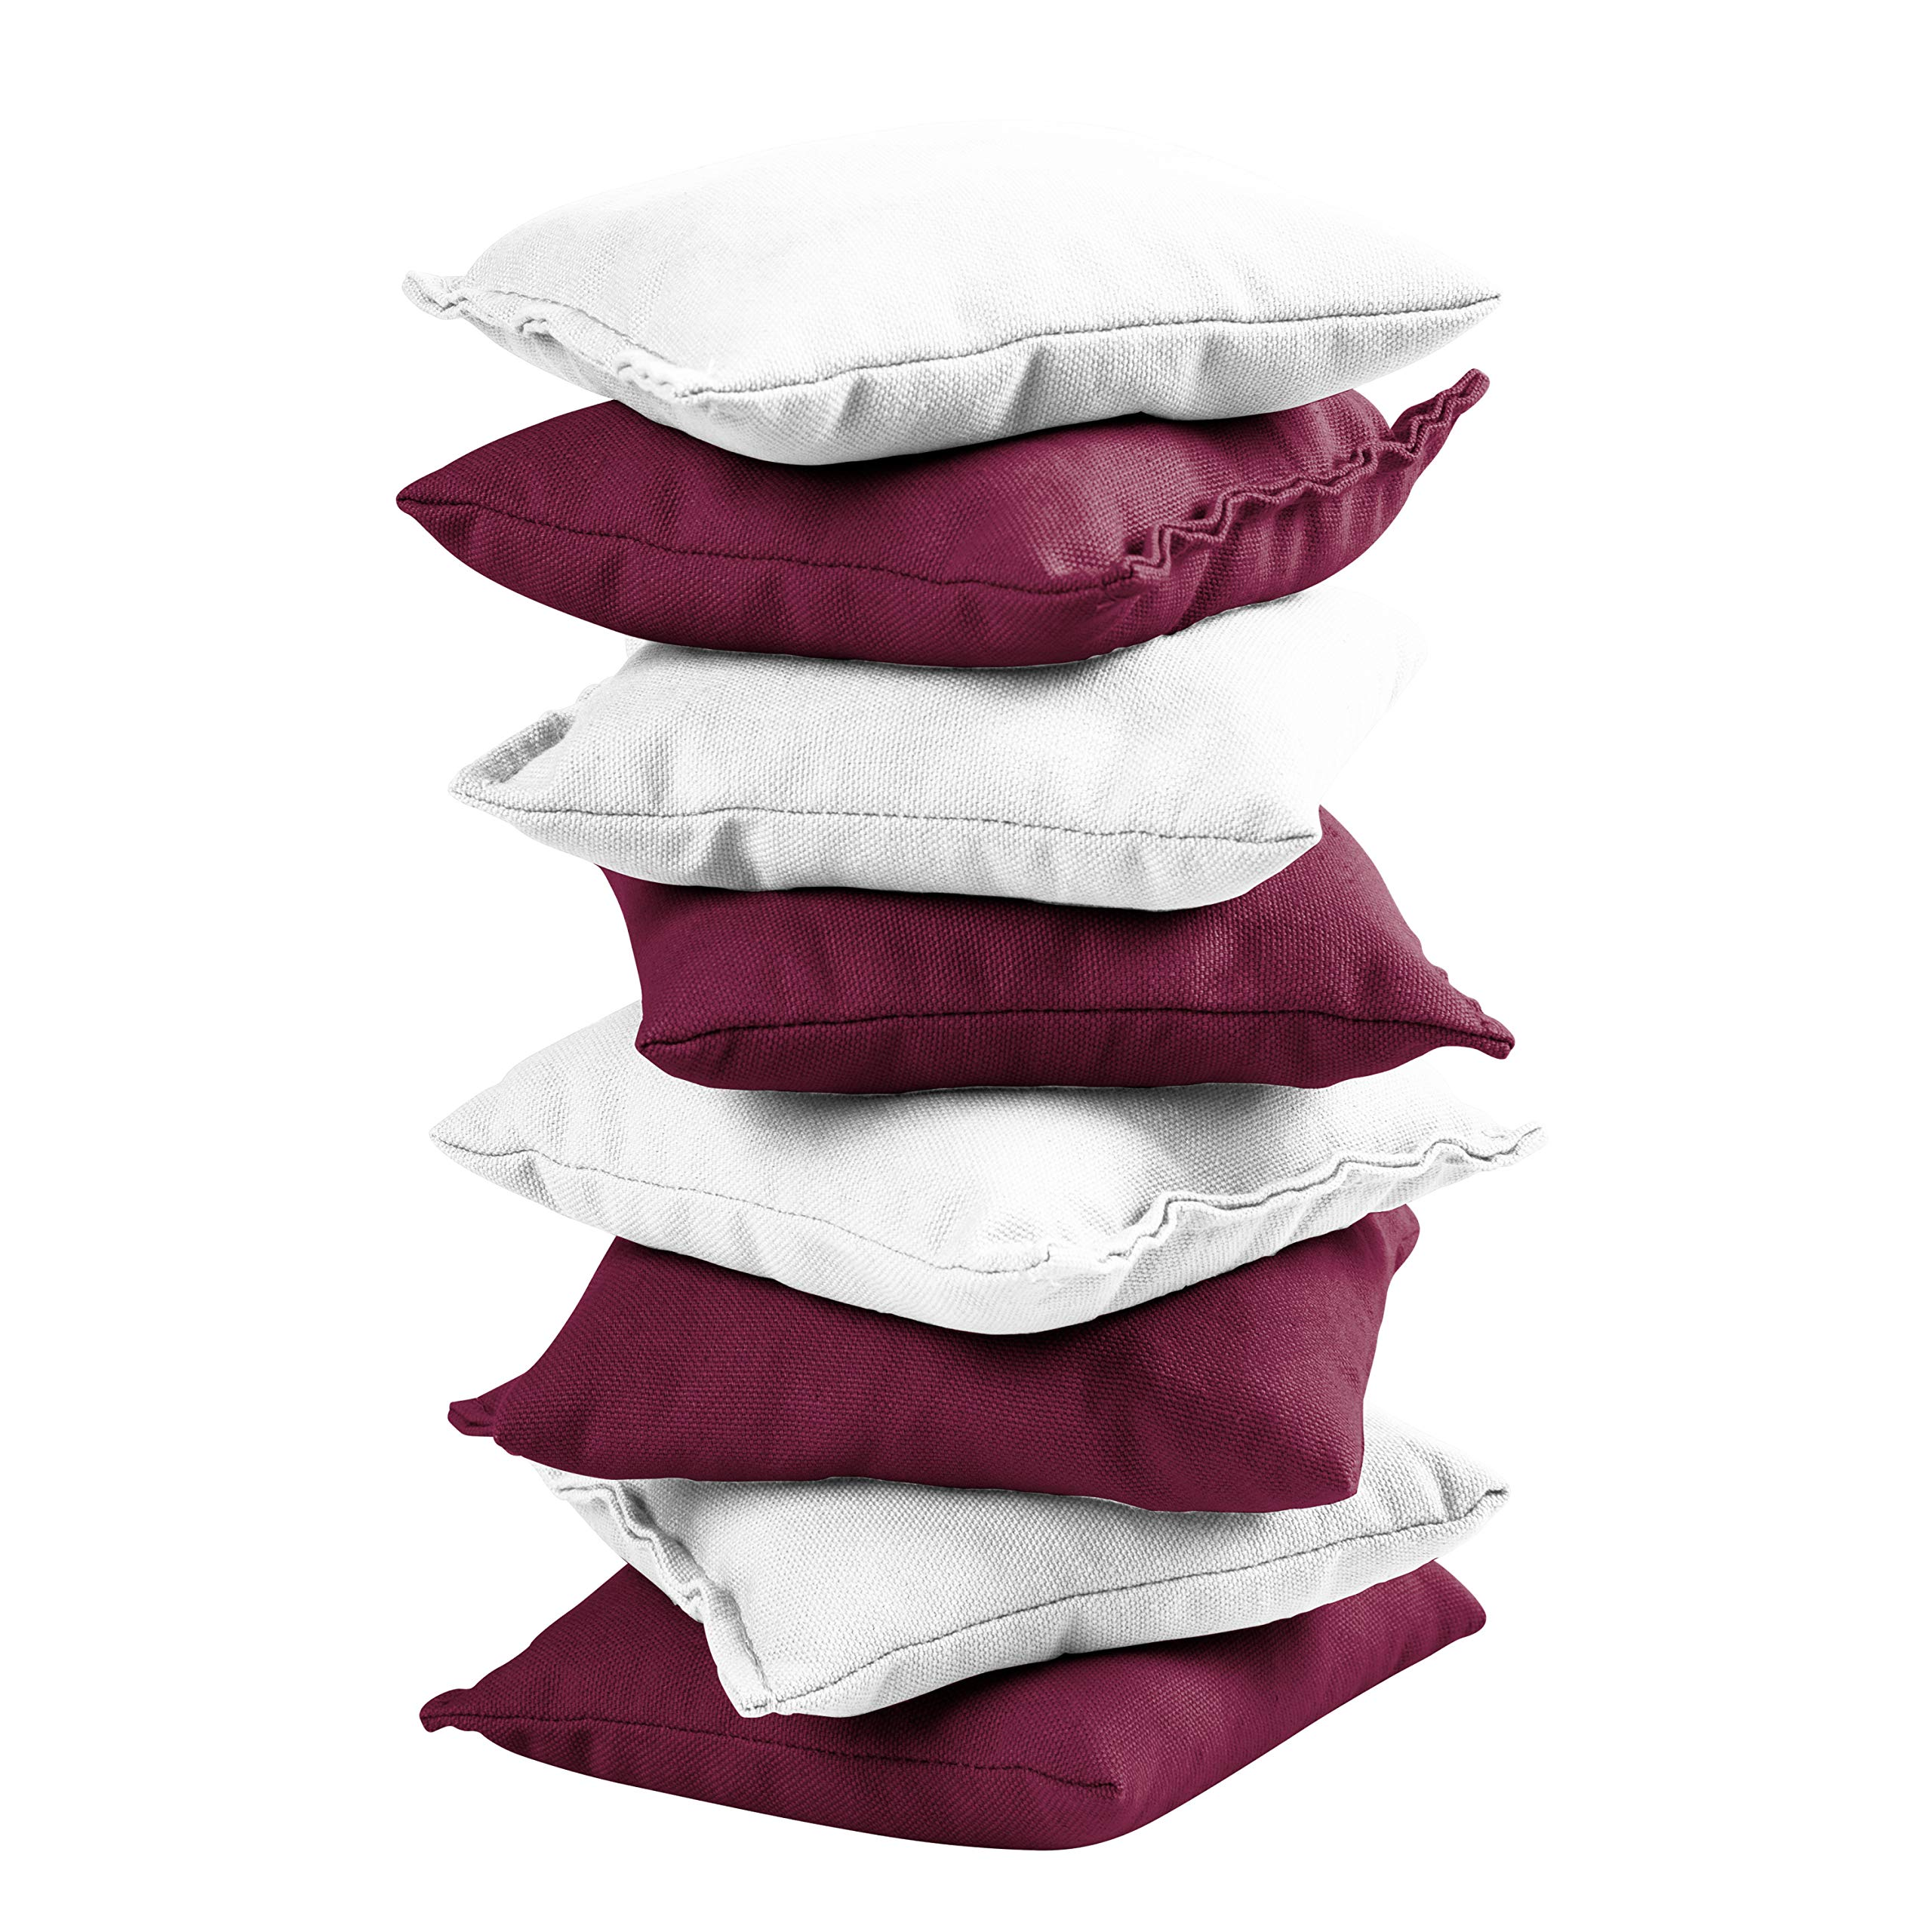 Victory Tailgate 8 Colored Corn Filled Regulation Cornhole Bags with Drawstring Pack (4 Burgundy, 4 White) by Victory Tailgate (Image #2)